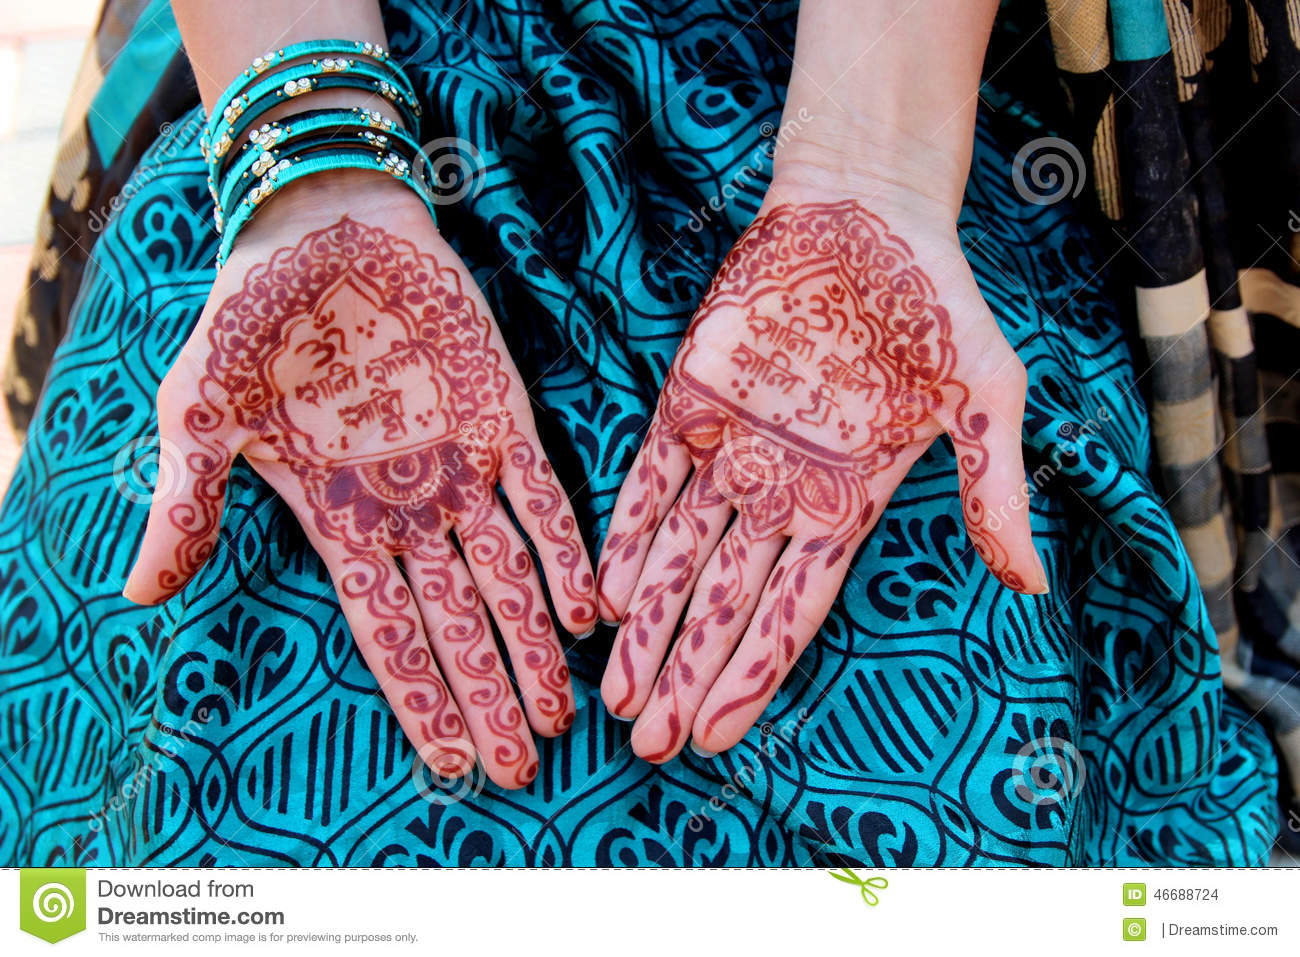 A To Z Mehndi Designs : Indian traditional mehndi design on women's hands stock photo